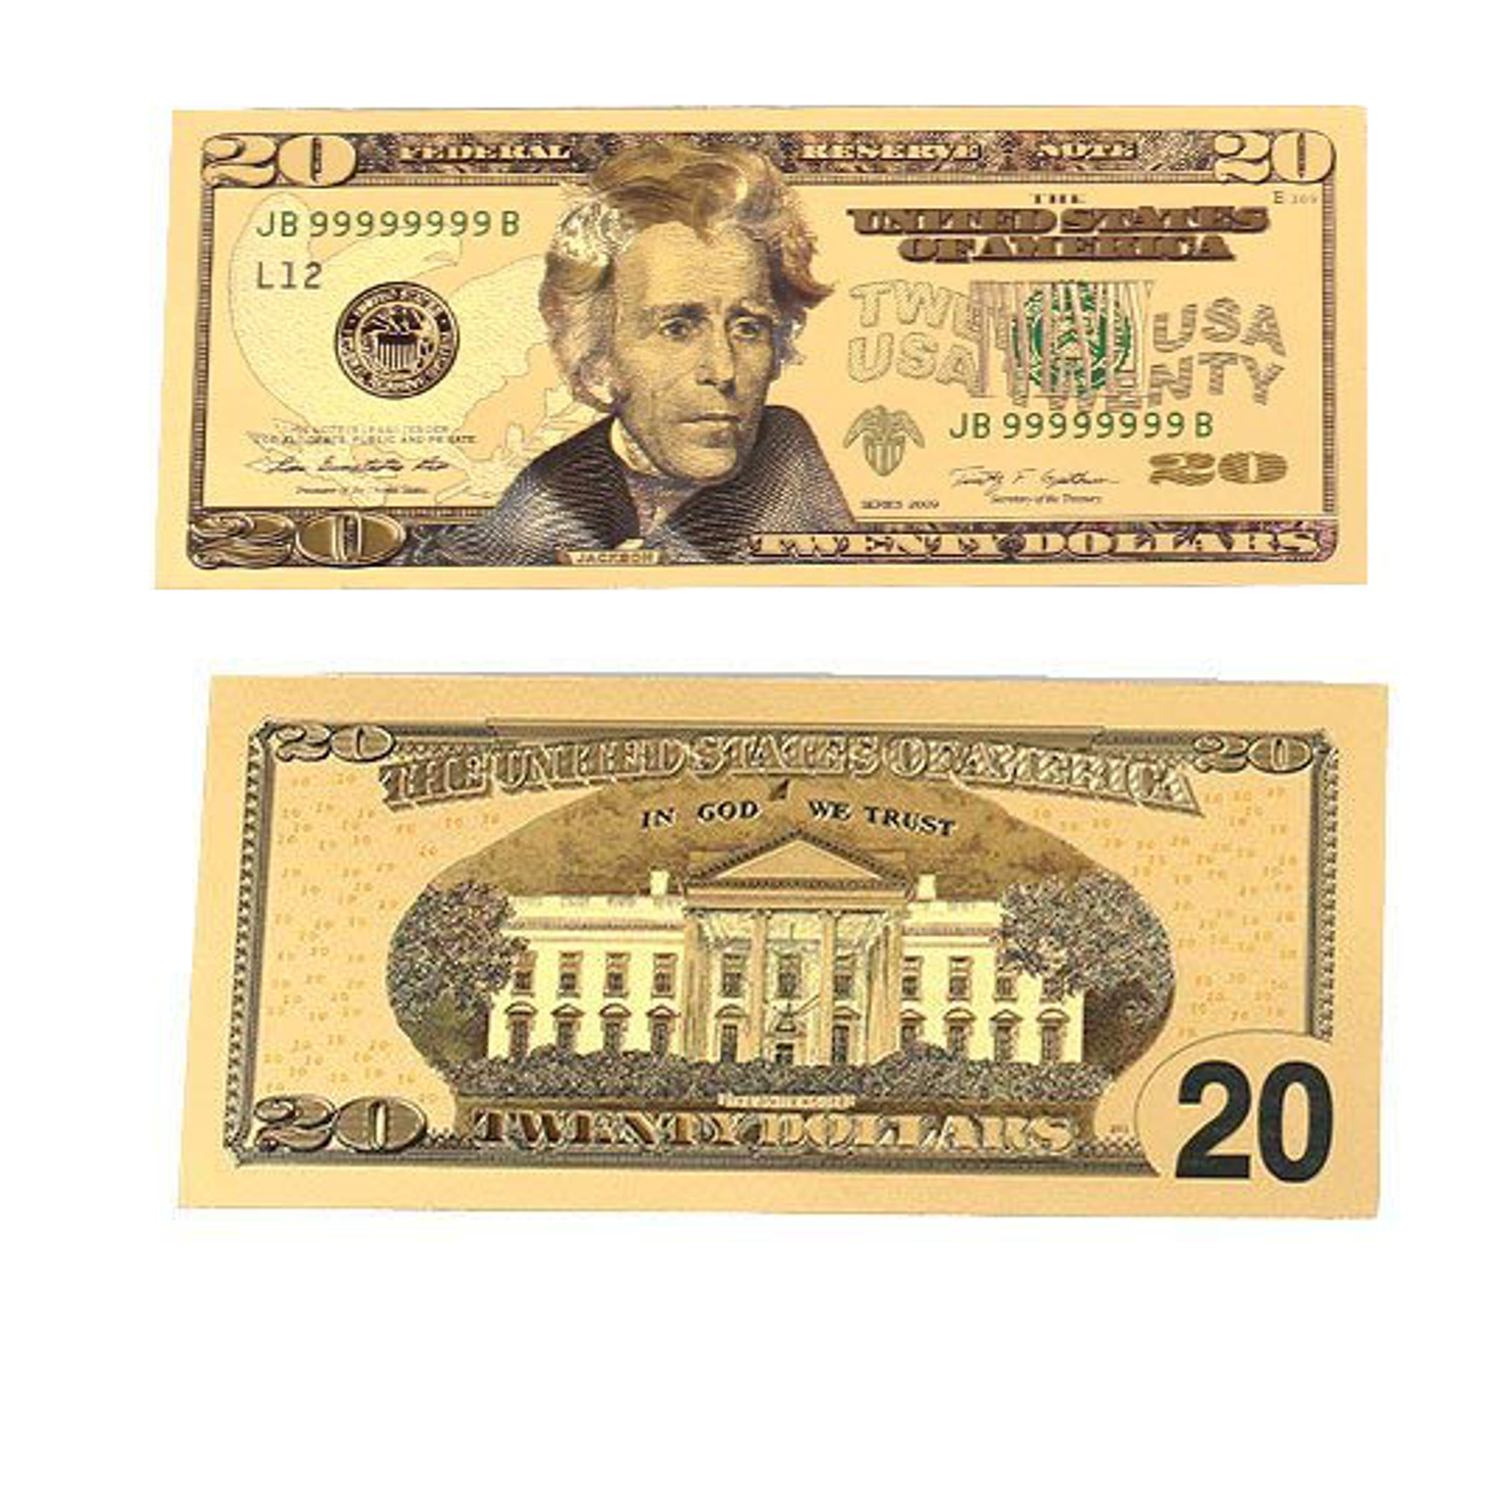 New 20 Dollar Bill 24k Gold Art Collectibles Plated Fake